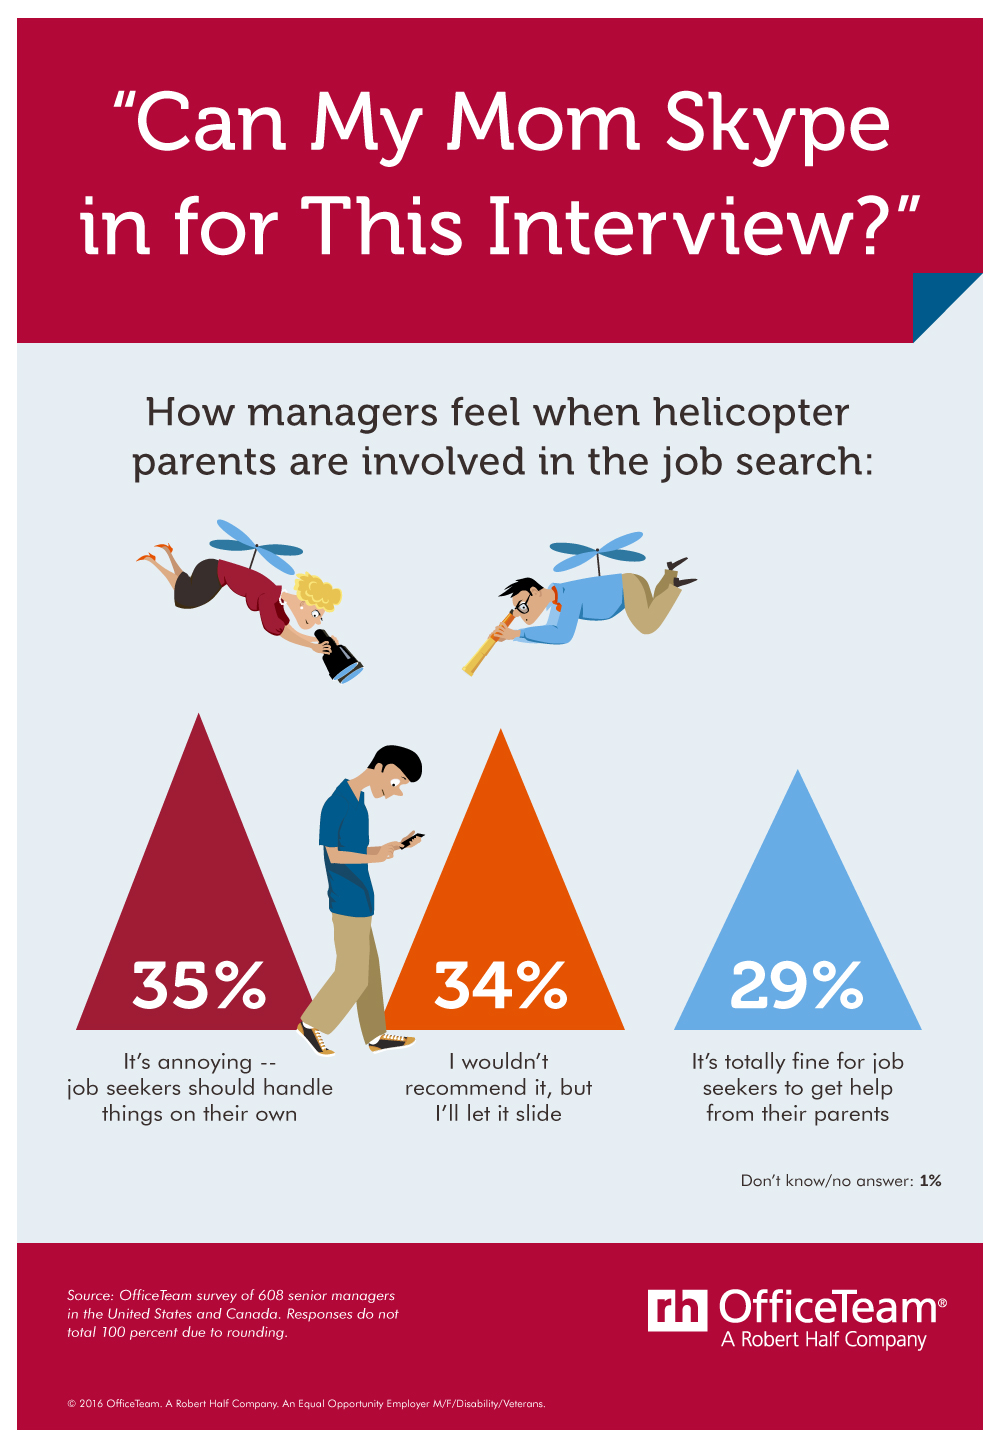 Helicopter parents survey